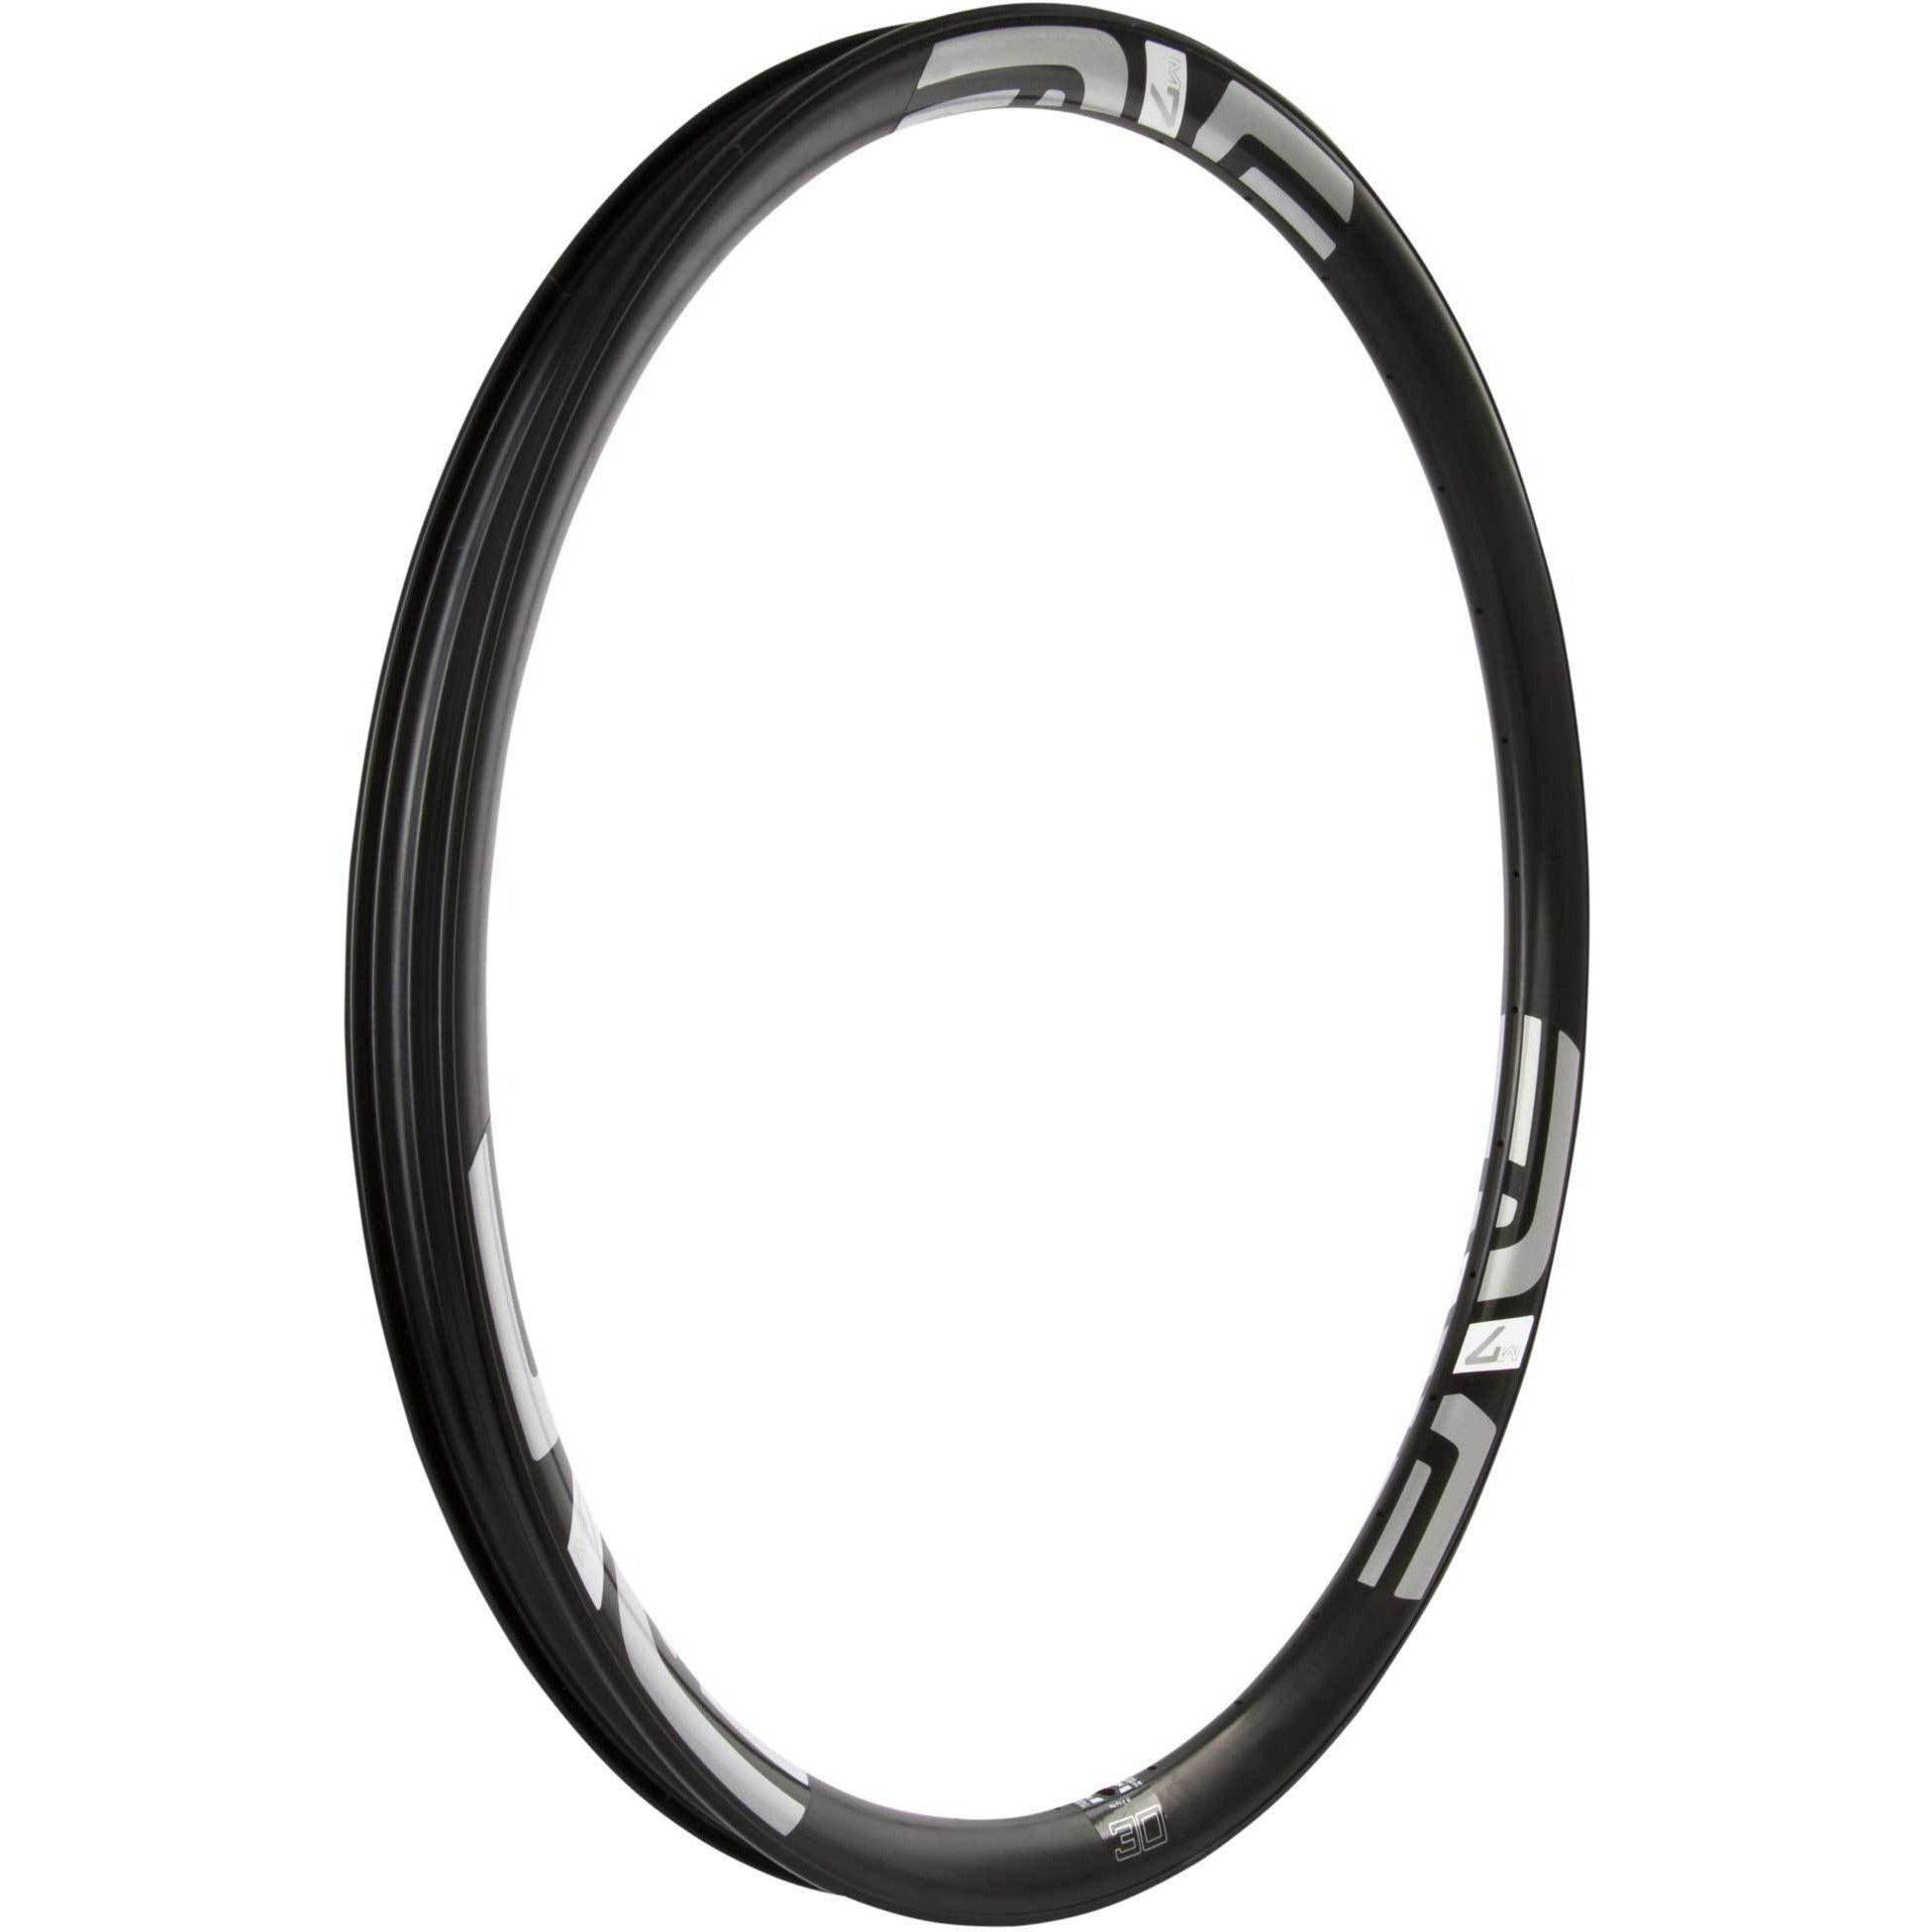 ENVE-ENVE M730 MTB Rim-27.5-32h-EN257302732-saddleback-elite-performance-cycling